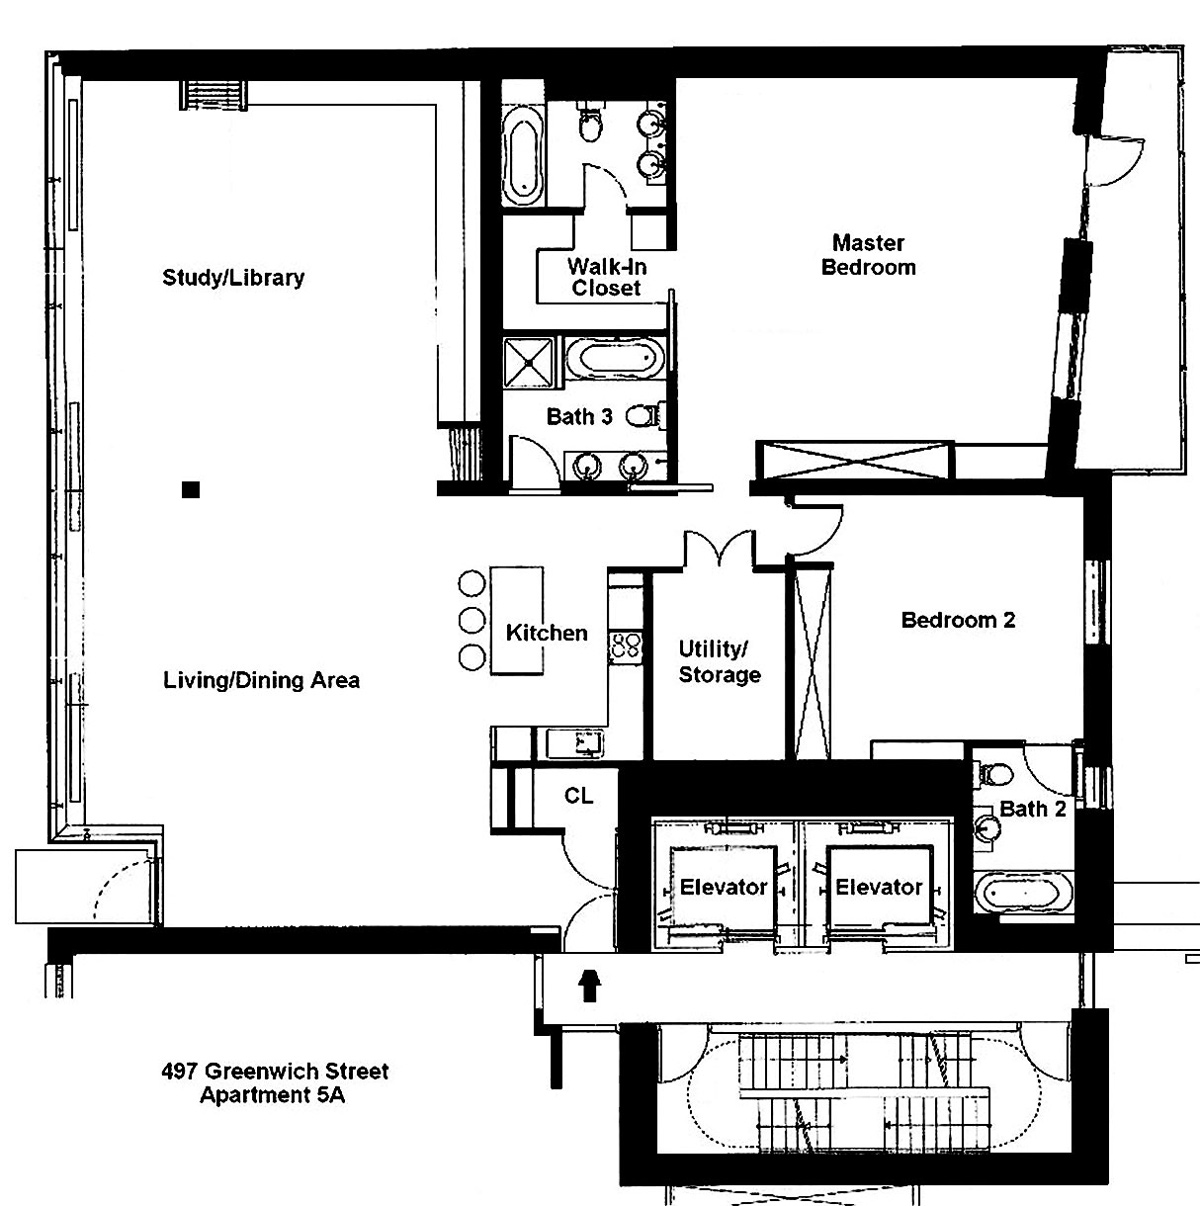 Floor Plan, Stylish Apartment in New York City